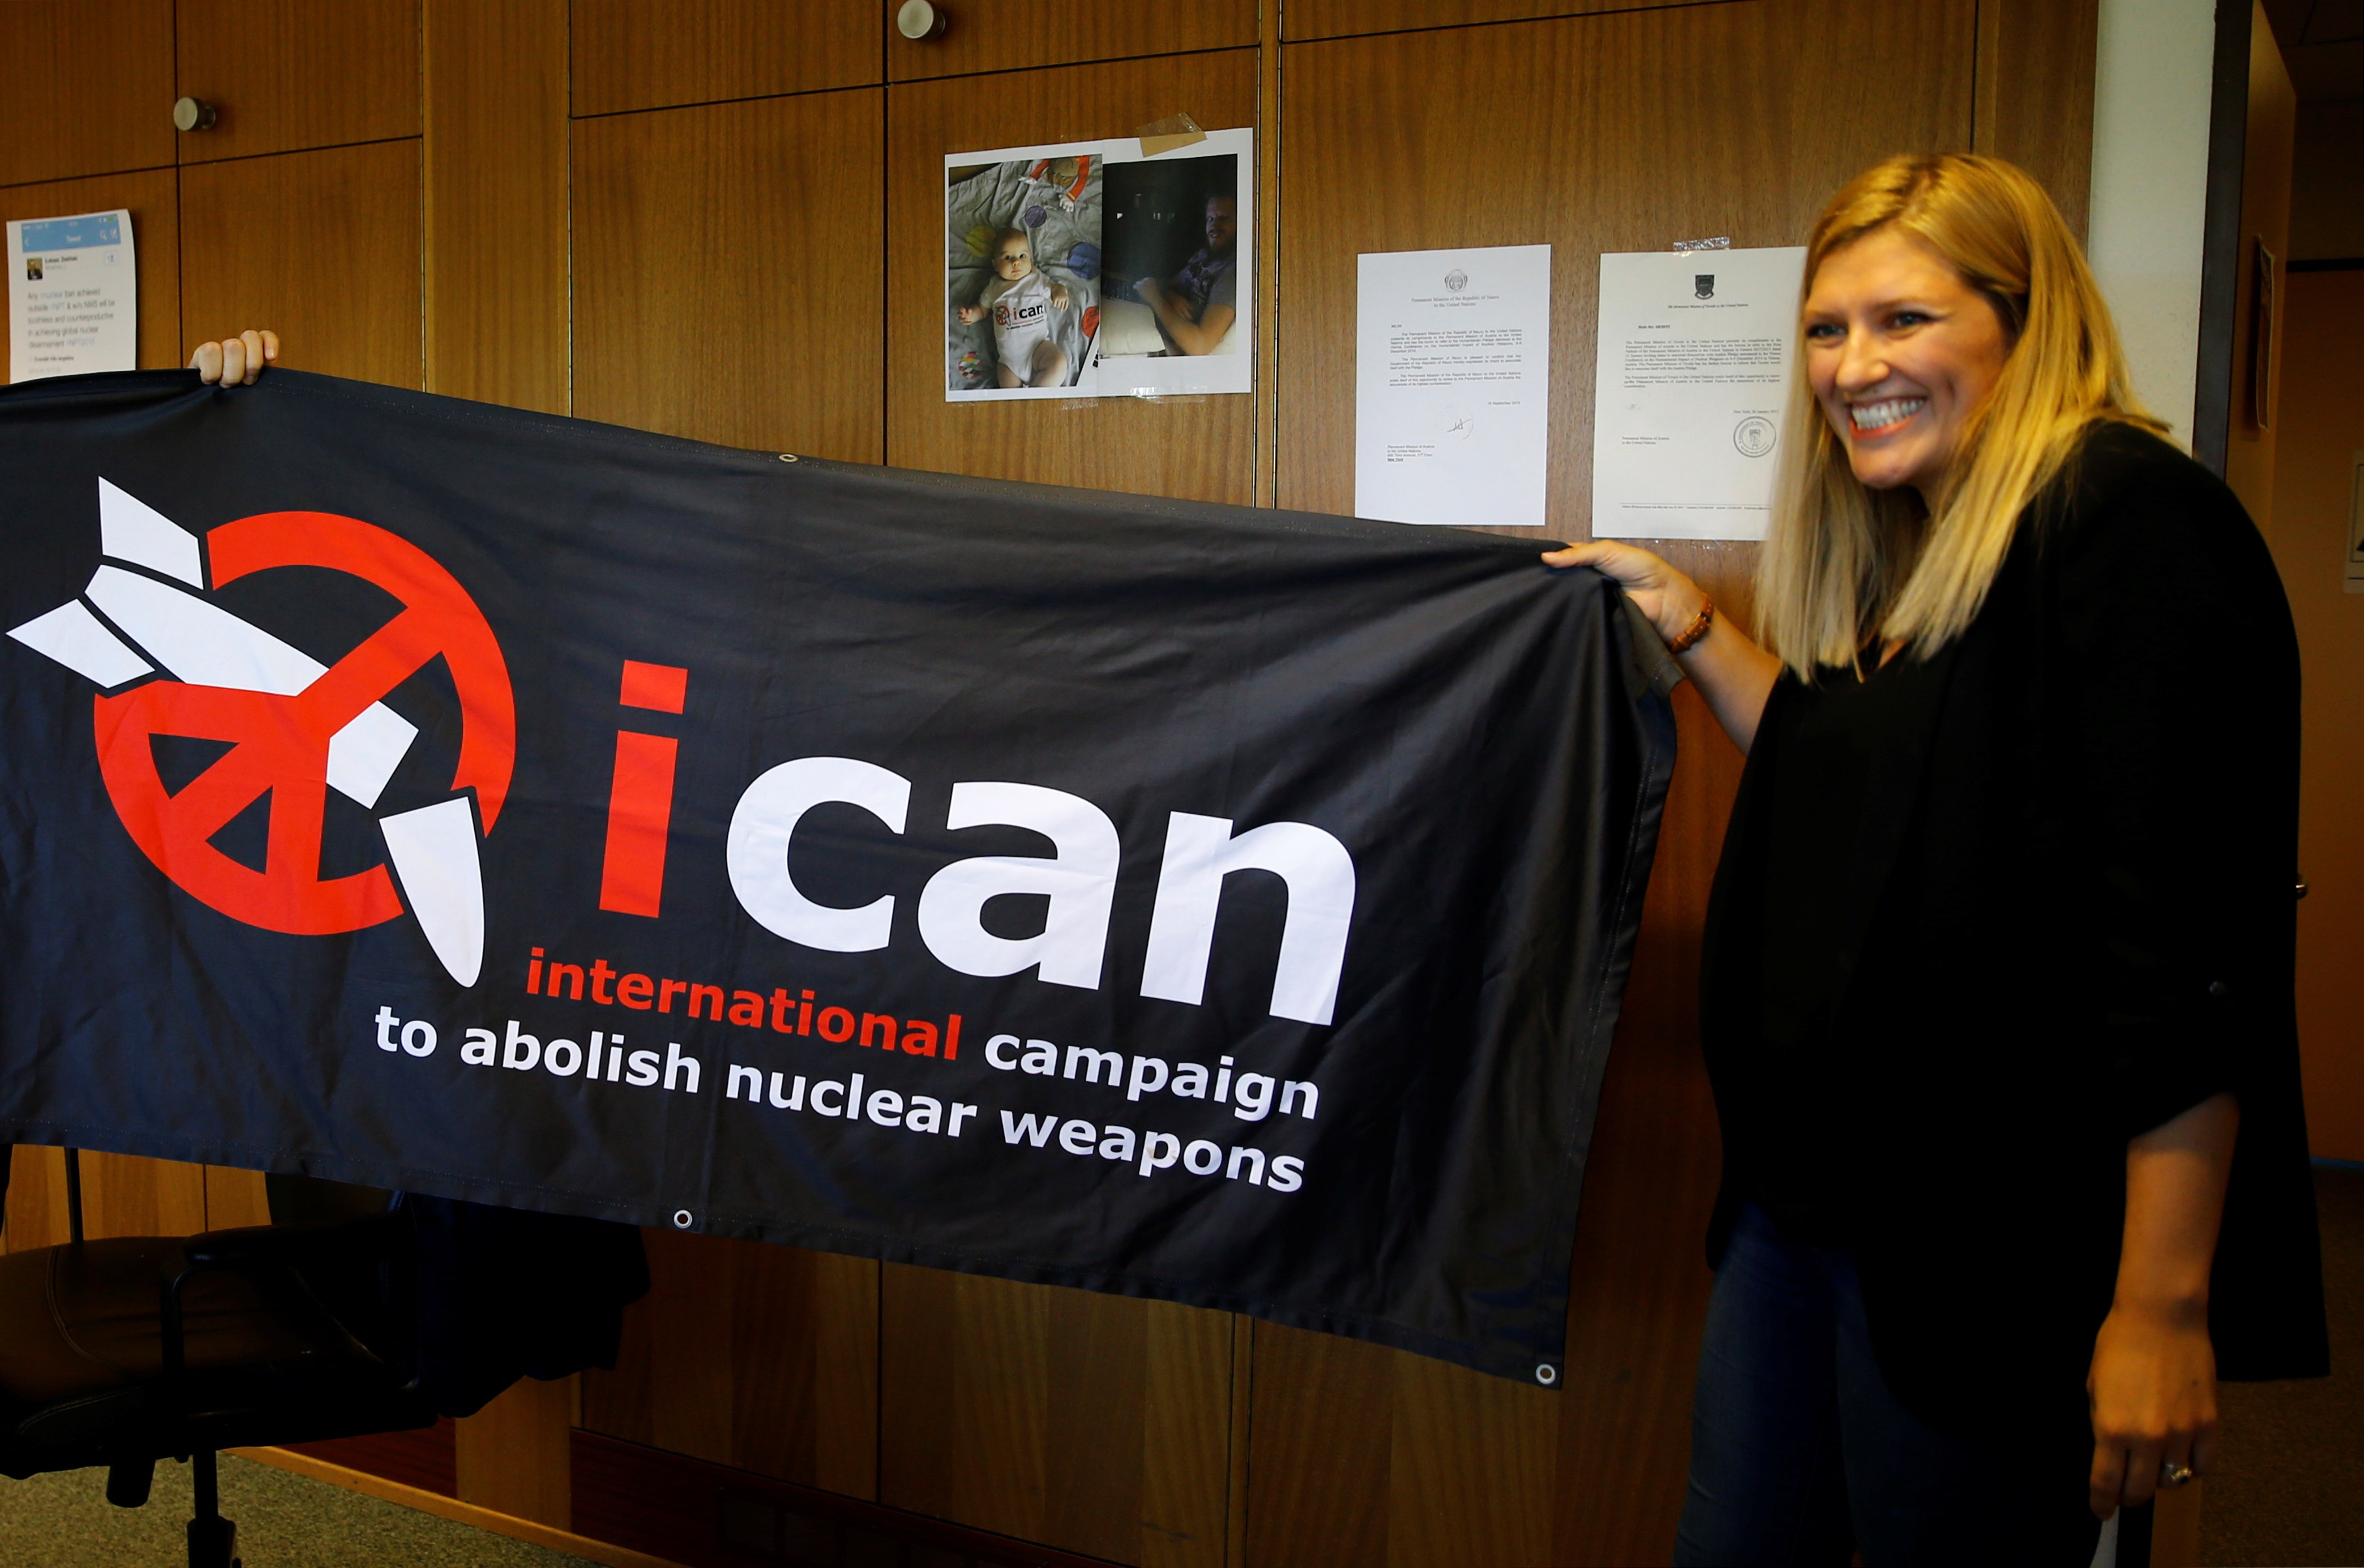 Peace Nobel: Nuclear Ban Advocates Have India's Grudging Respect, Not Support